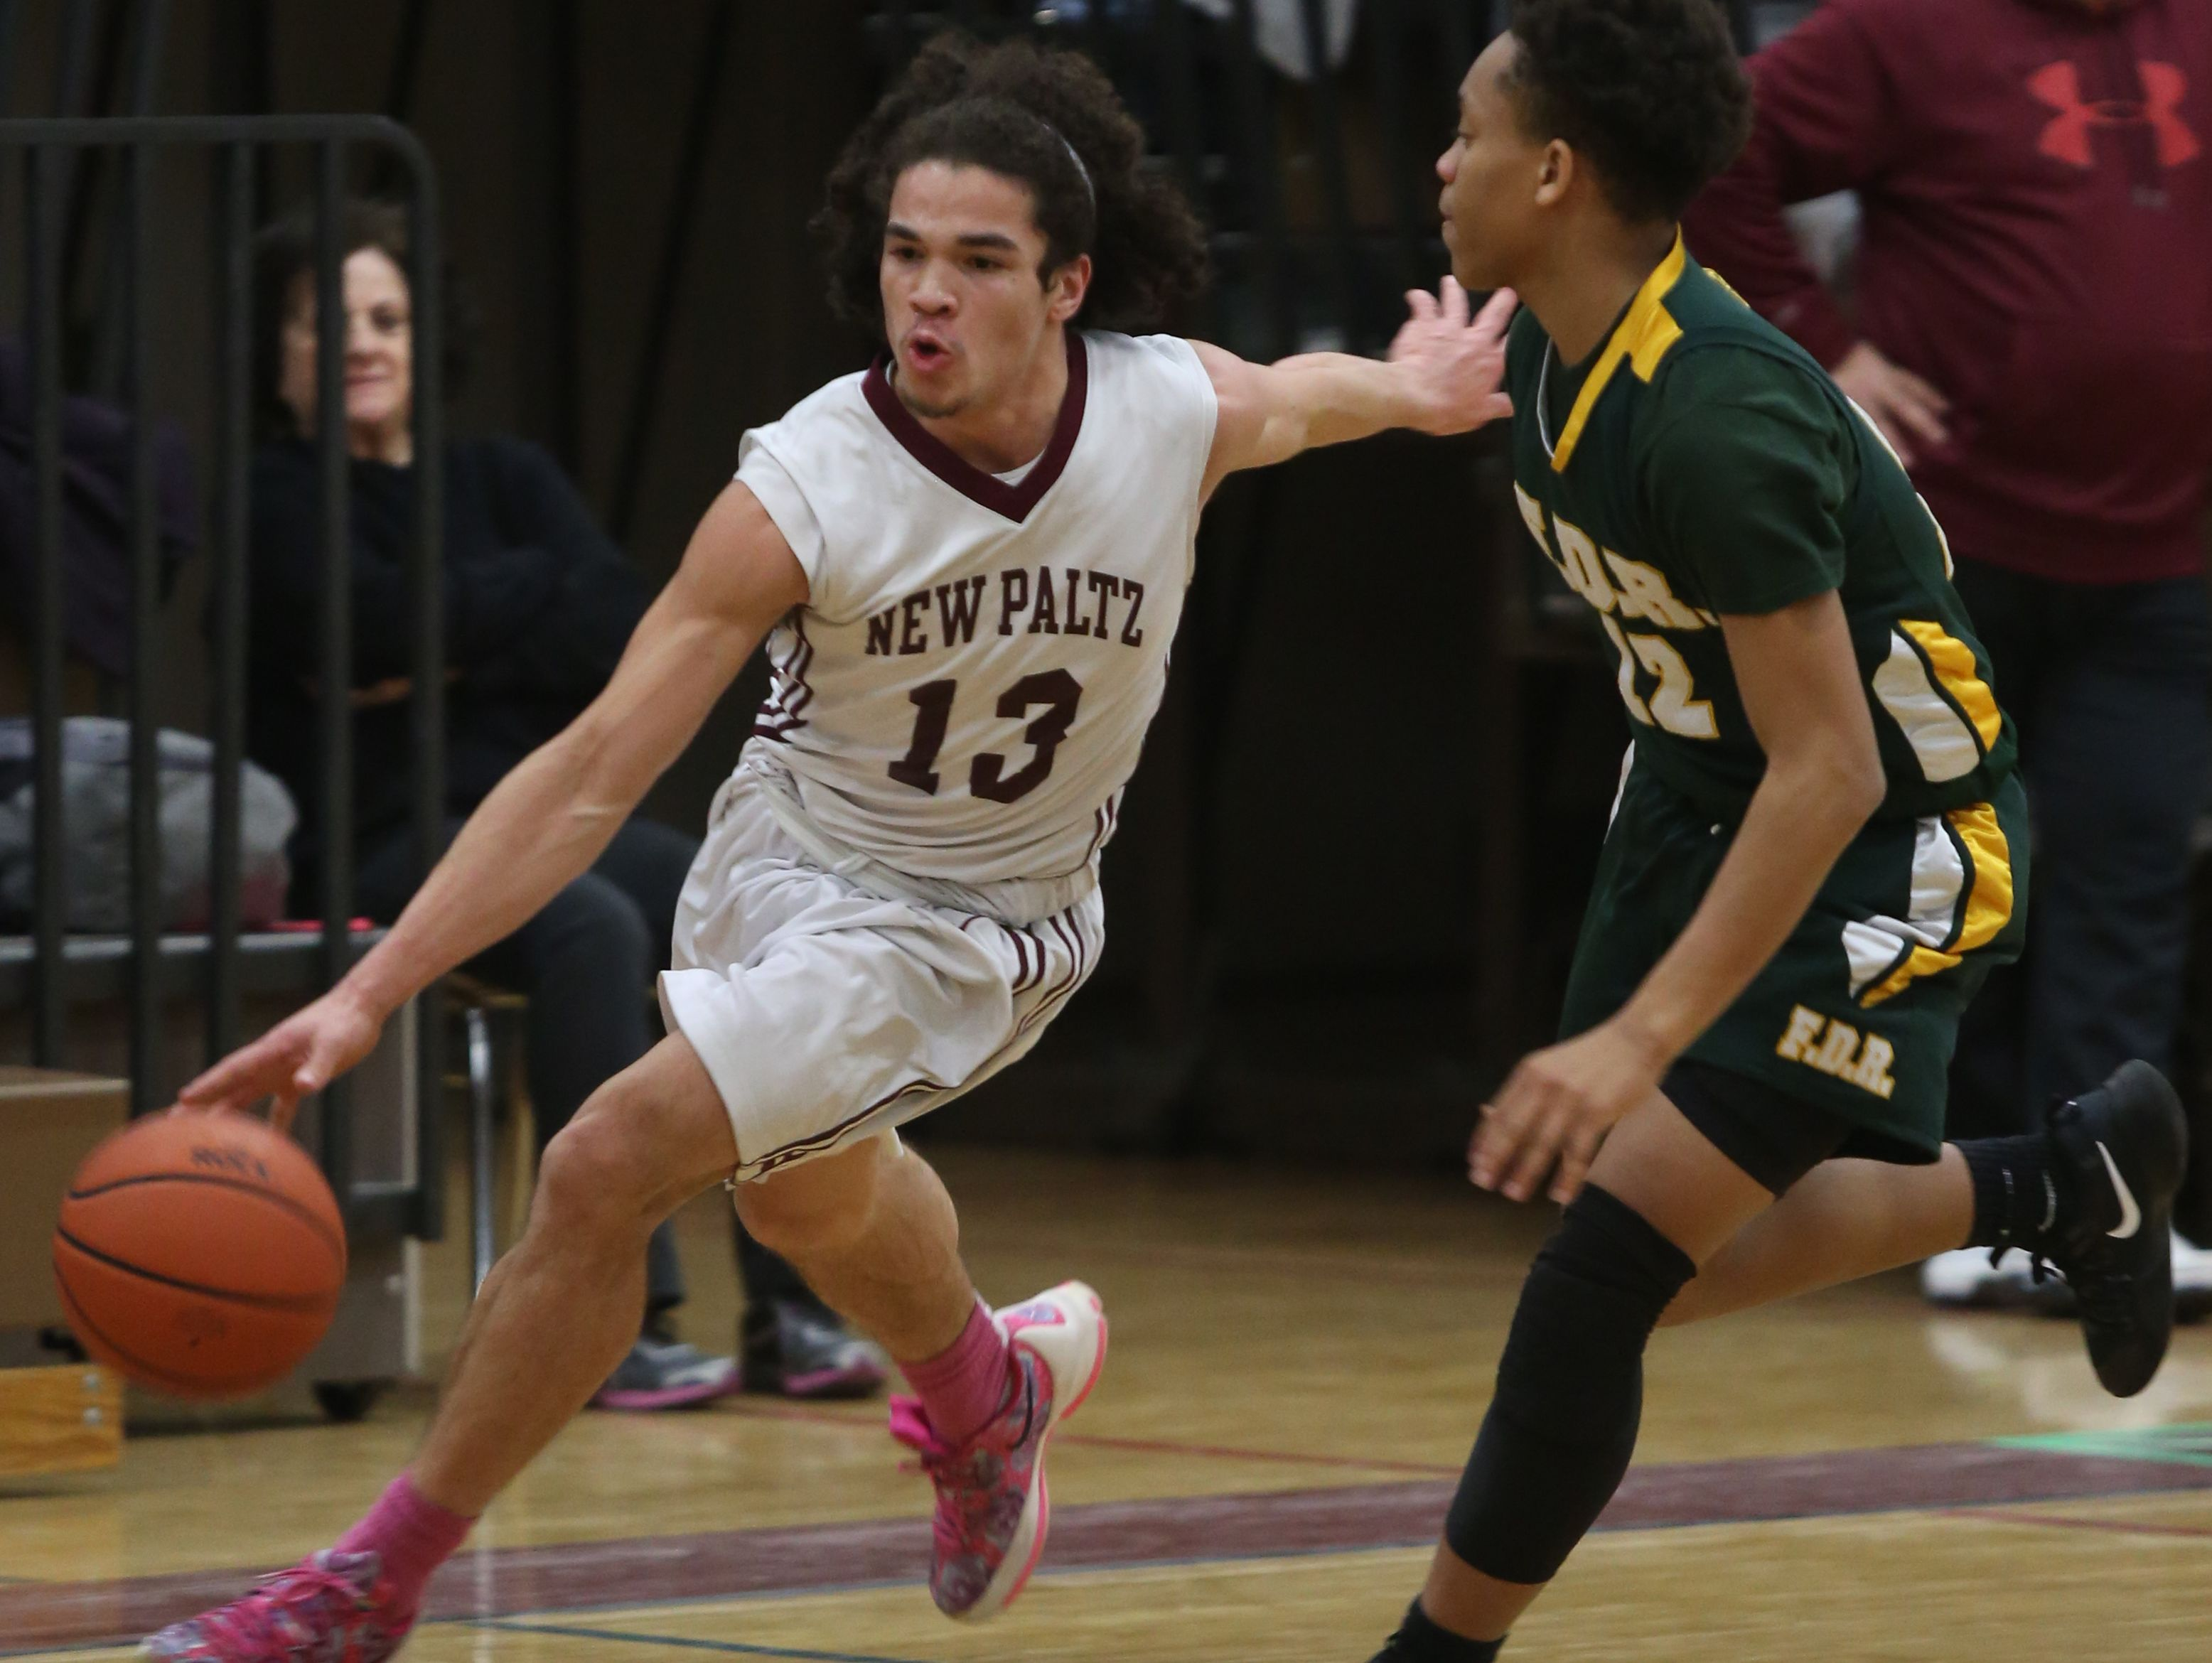 New Paltz's Axel Rodrigues (13) dribbles the ball past Franklin D. Roosevelt's Kevin Henri (12) during basketball game at New Paltz High School on Feb. 3, 2017.